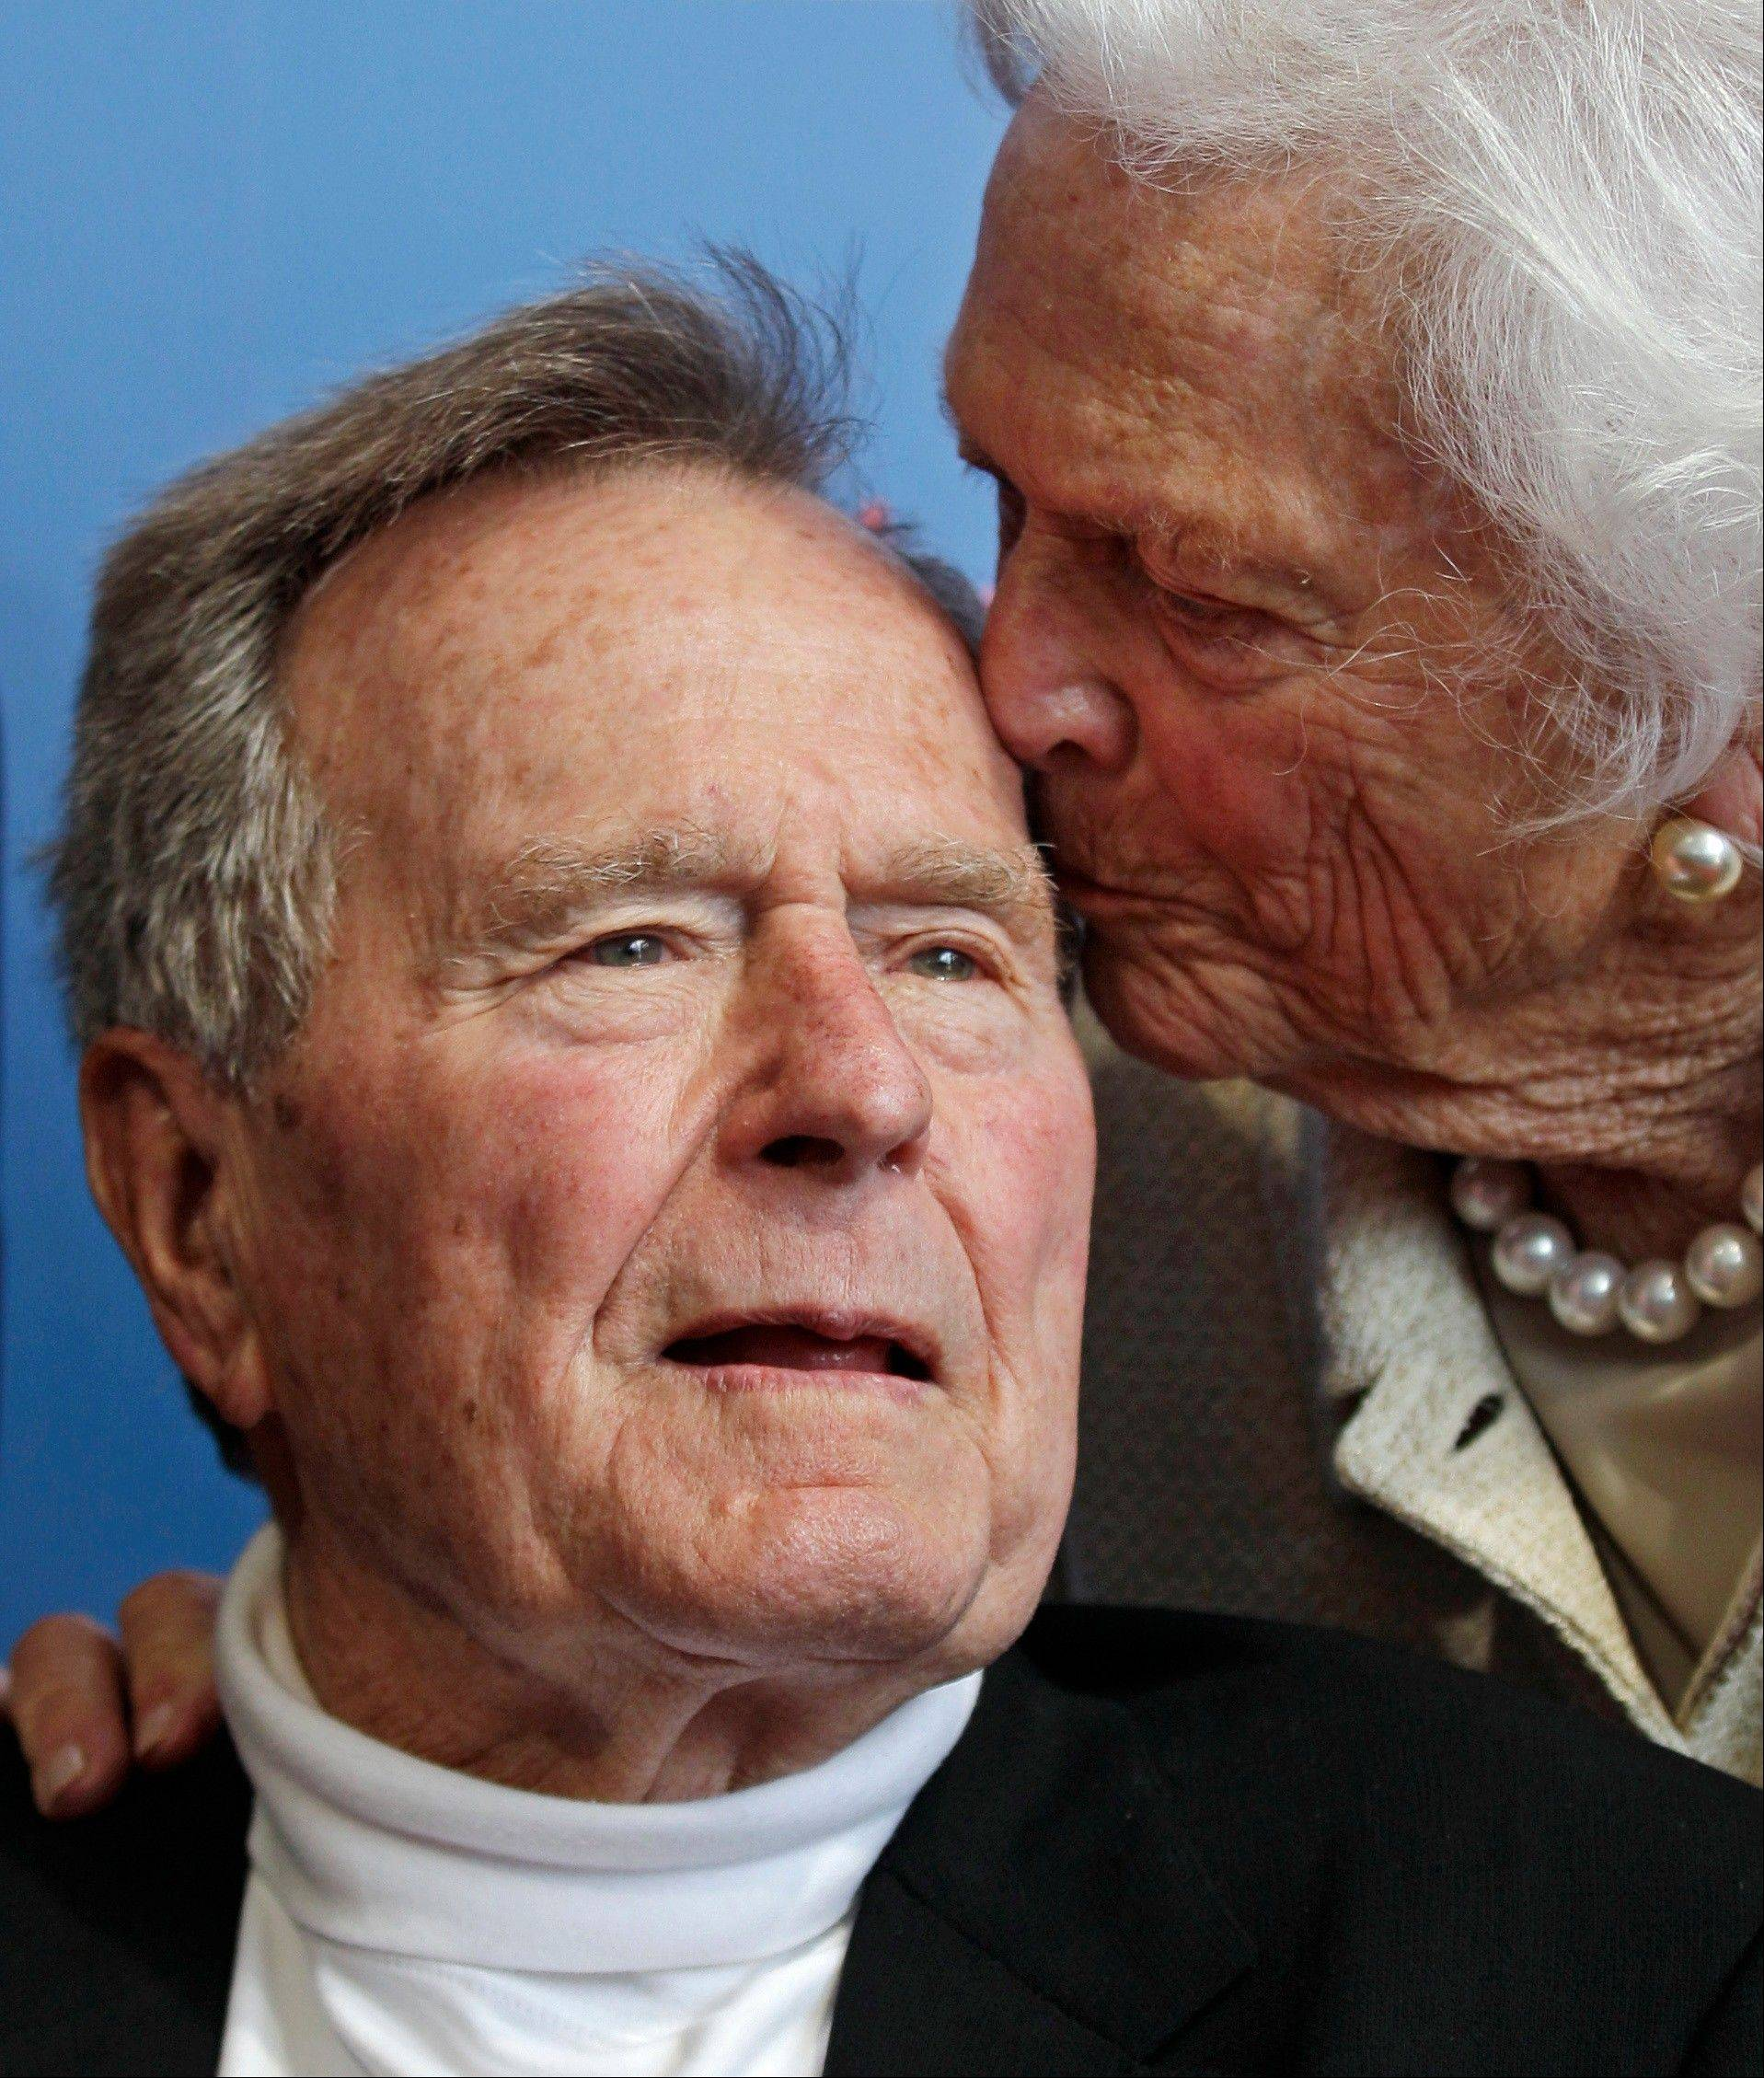 Former President George H.W. Bush has been hospitalized for about a week in Houston for treatment of a lingering cough. Bush's chief of staff, Jean Becker, says the 88-year-old former president is being treated for bronchitis at Houston's Methodist Hospital and is expected to be released by the weekend. He was admitted Friday.